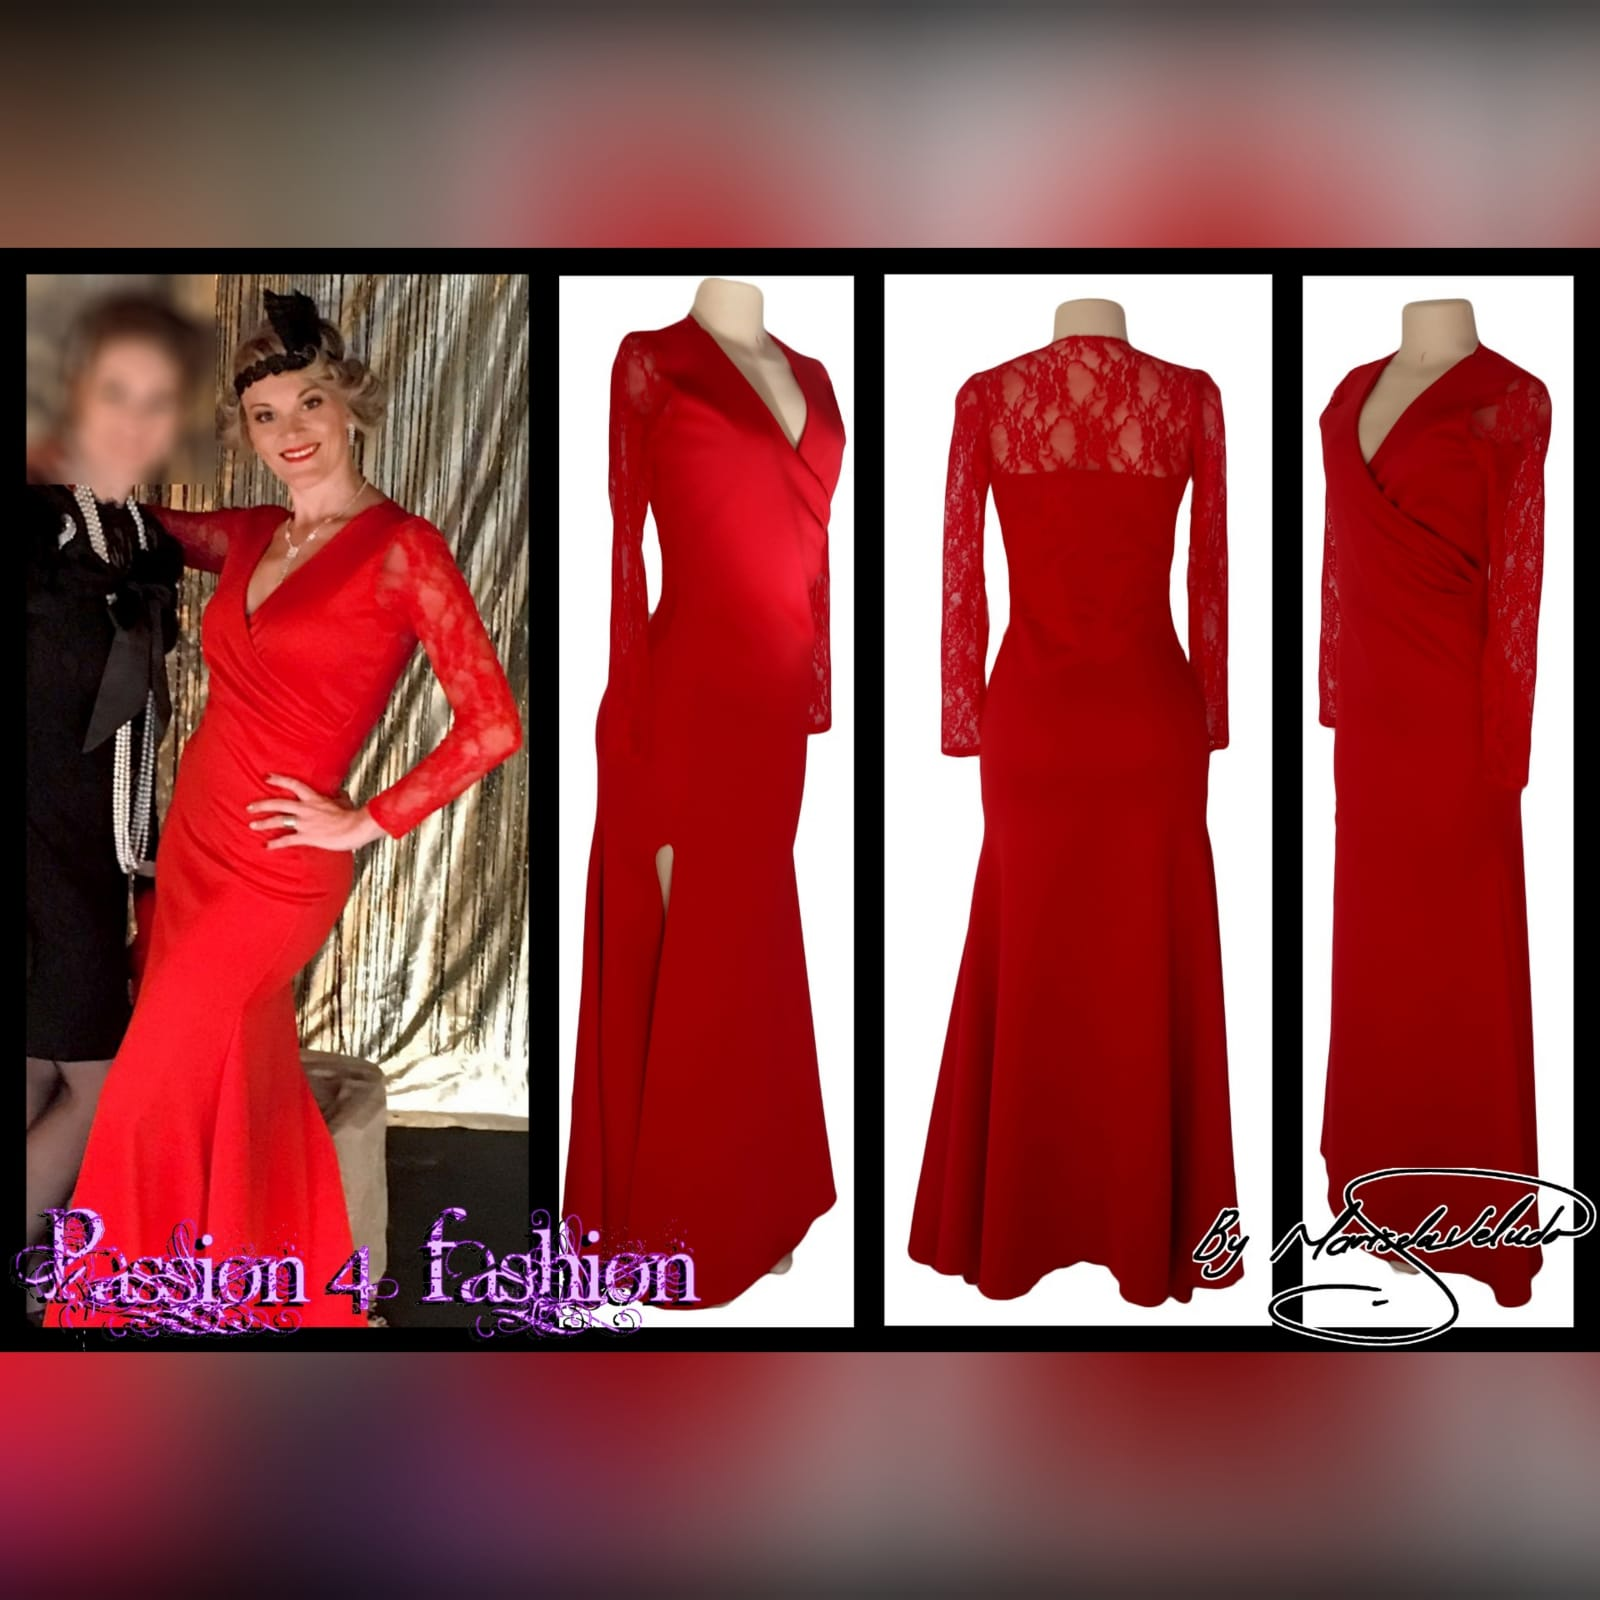 Long red cross busted evening party dress 5 long red cross busted evening party dress with long lace sleeves. With back neckline in lace. With a slit